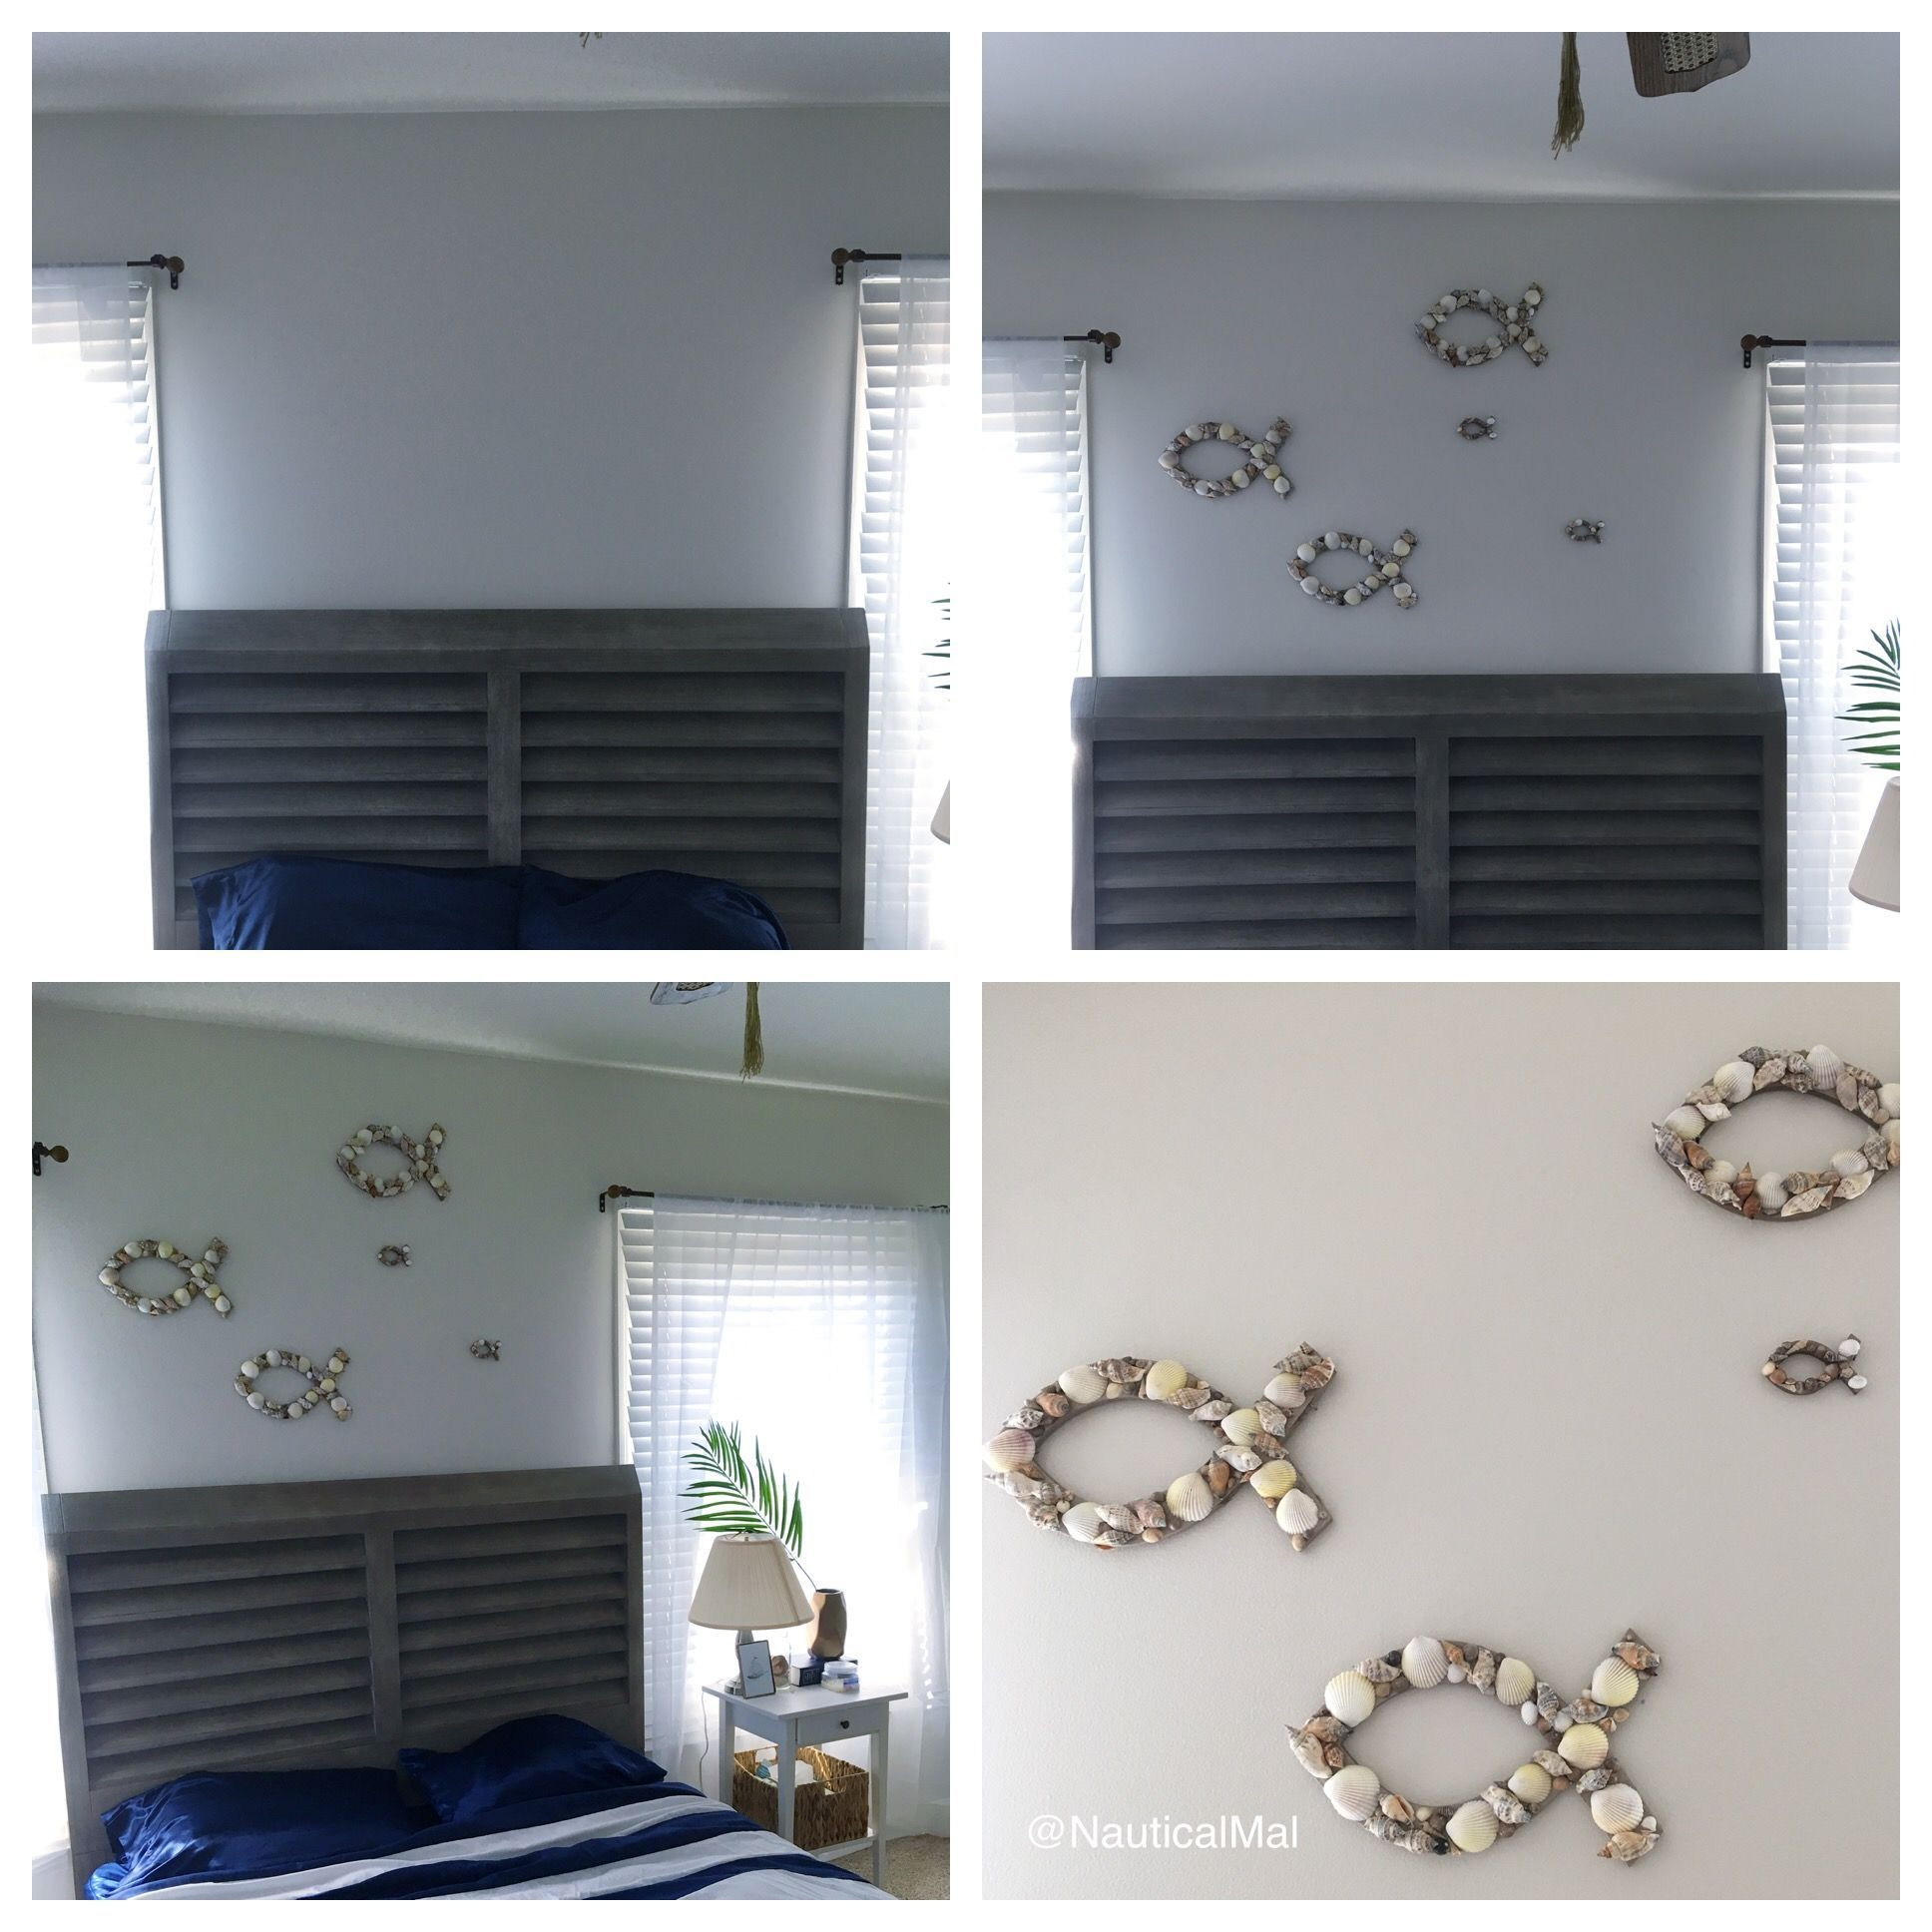 Diy Coastal Bedroom Wall Decor Visit The Nautical Mal Blog